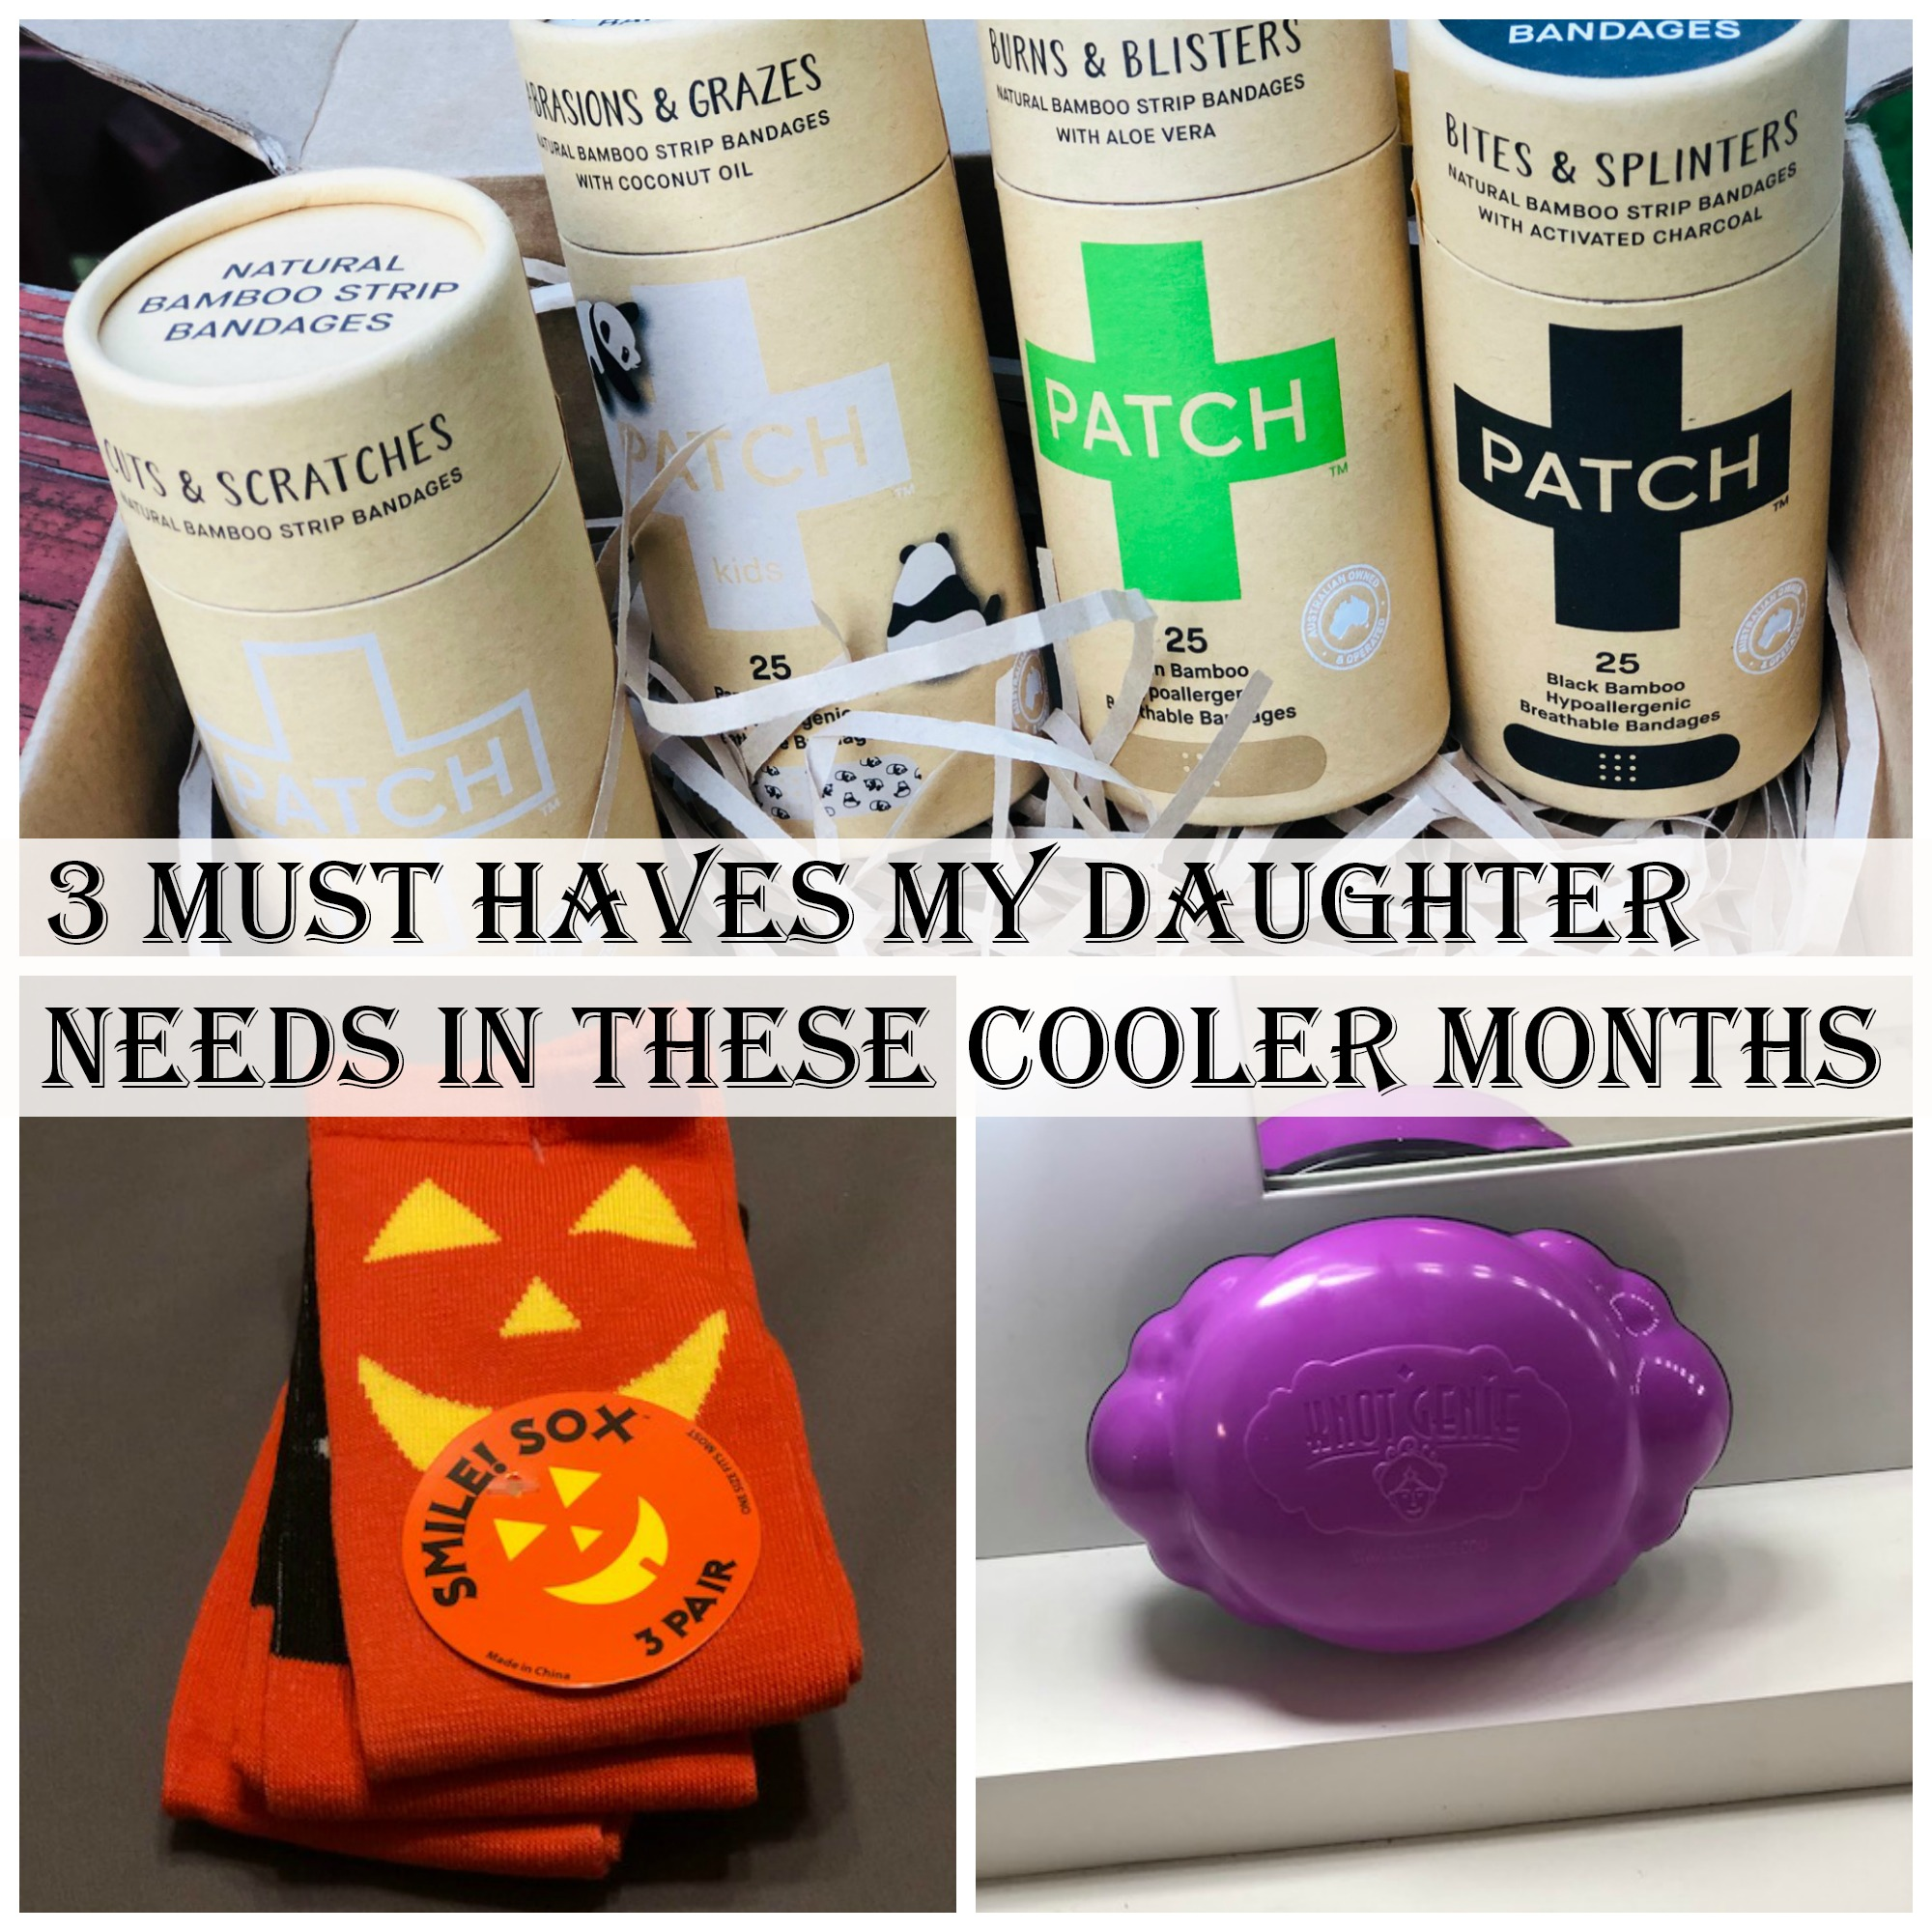 3 Must Haves My Daughter Needs in These Cooler Months